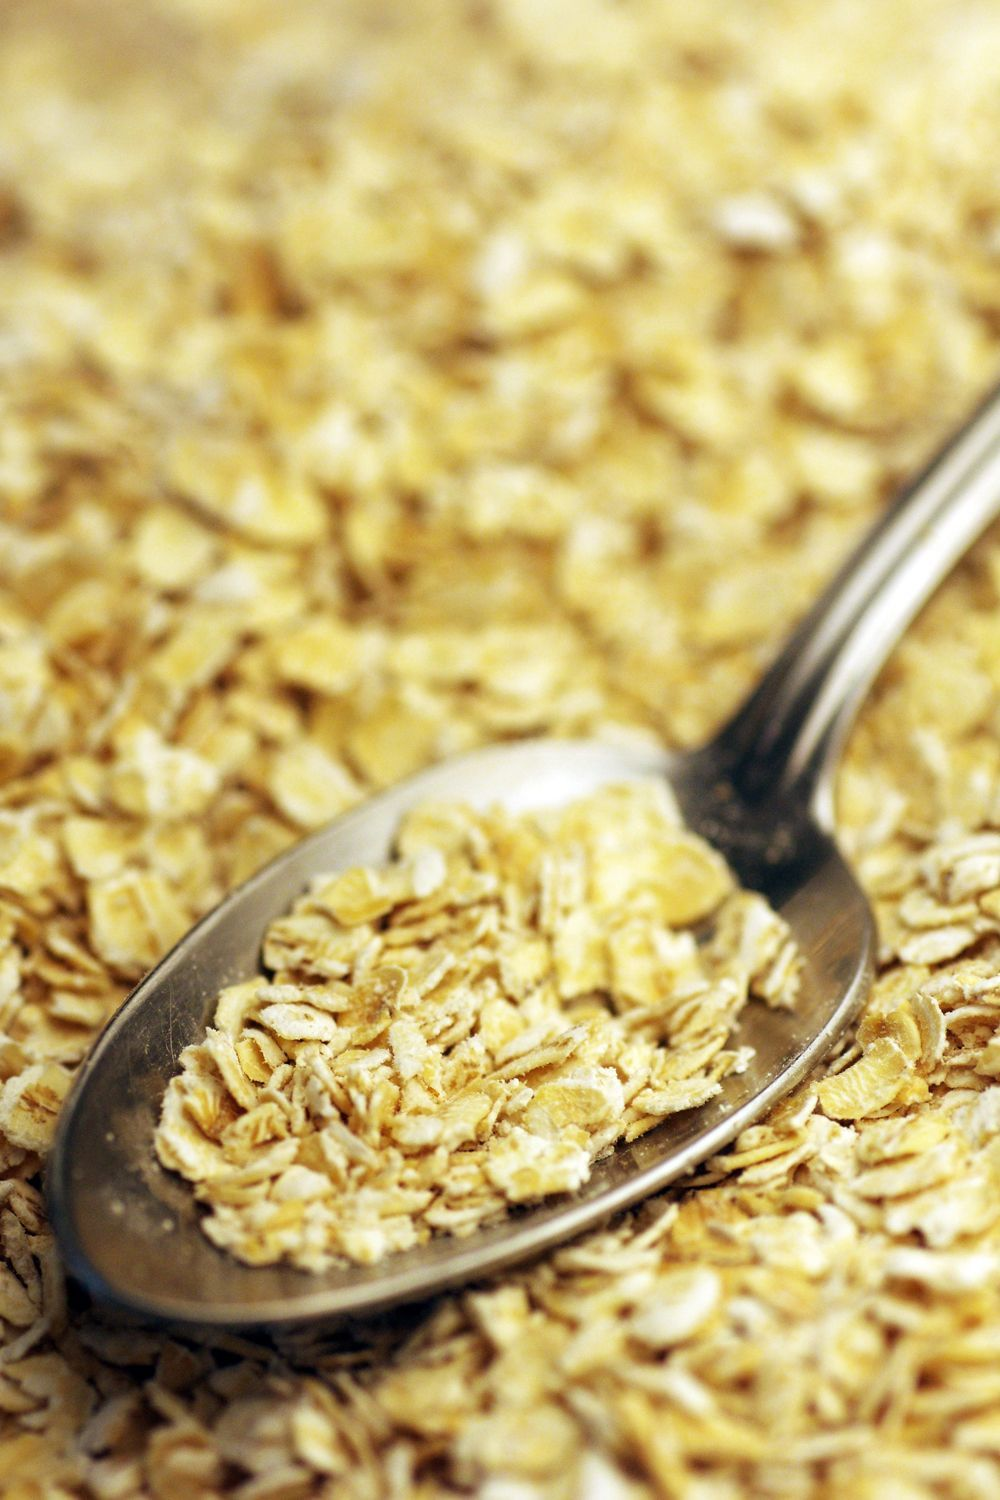 A homemade oatmeal bath is a simple and inexpensive solution to soothe diaper rashes, eczema, dry skin, and other common pediatric skin conditions.